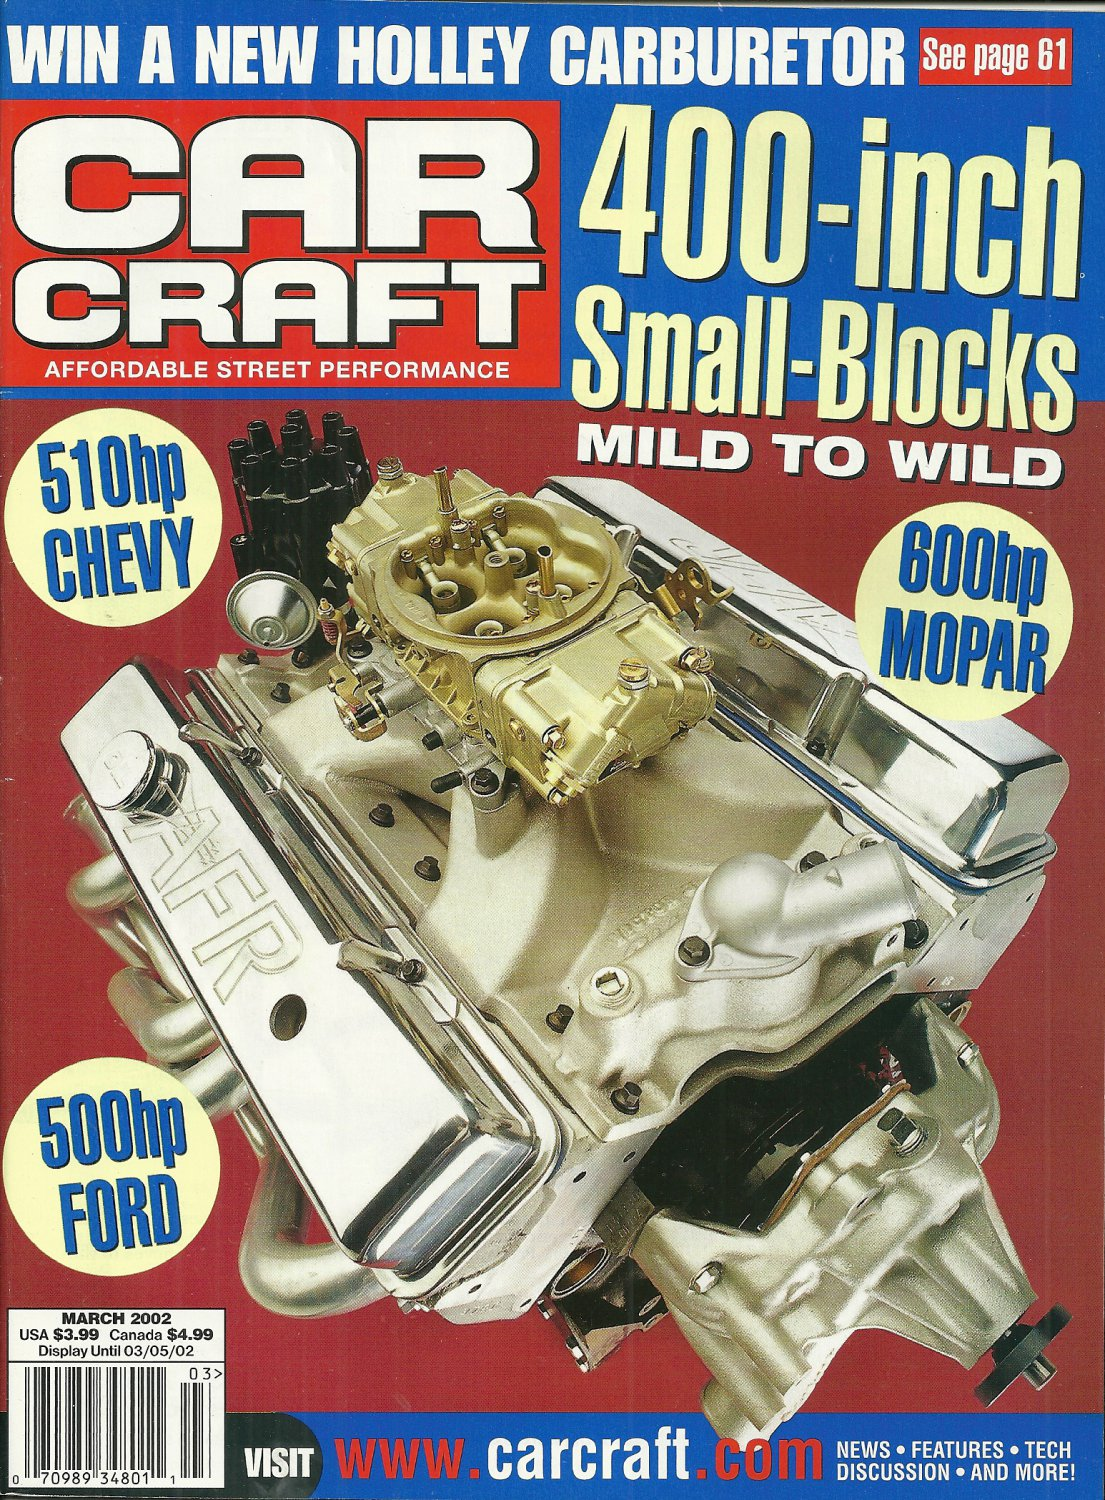 CAR CRAFT MAGAZINE March 2002 400-inch Small-Blocks 510 hp Chevy 500 hp Ford